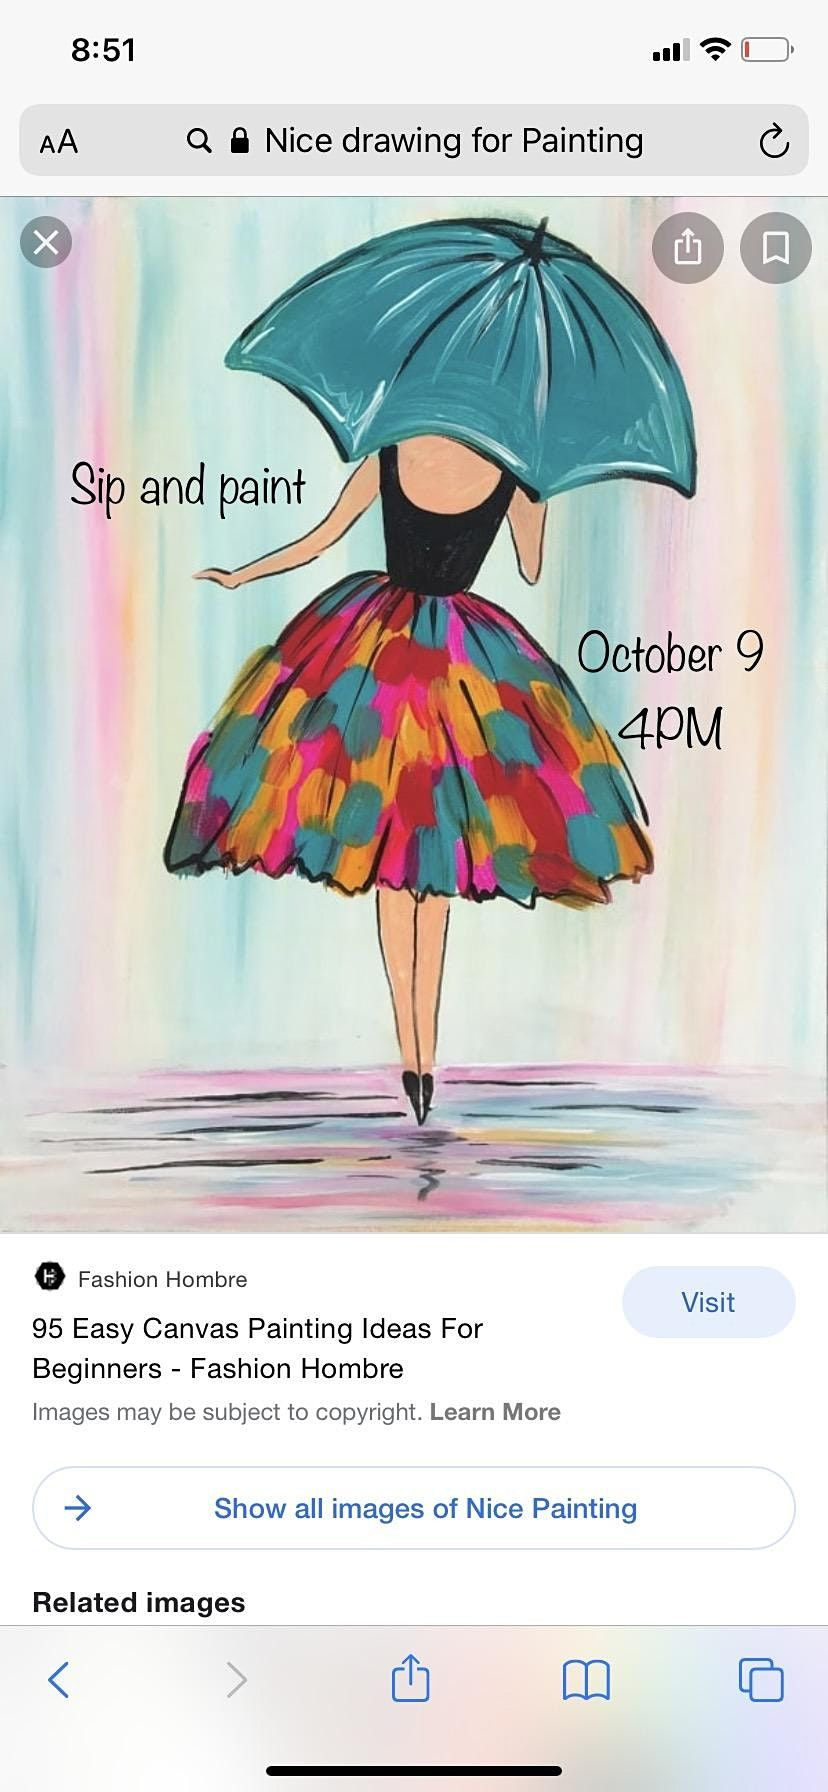 Adult Sip and Paint Party., 9 October   Event in Birmingham   AllEvents.in